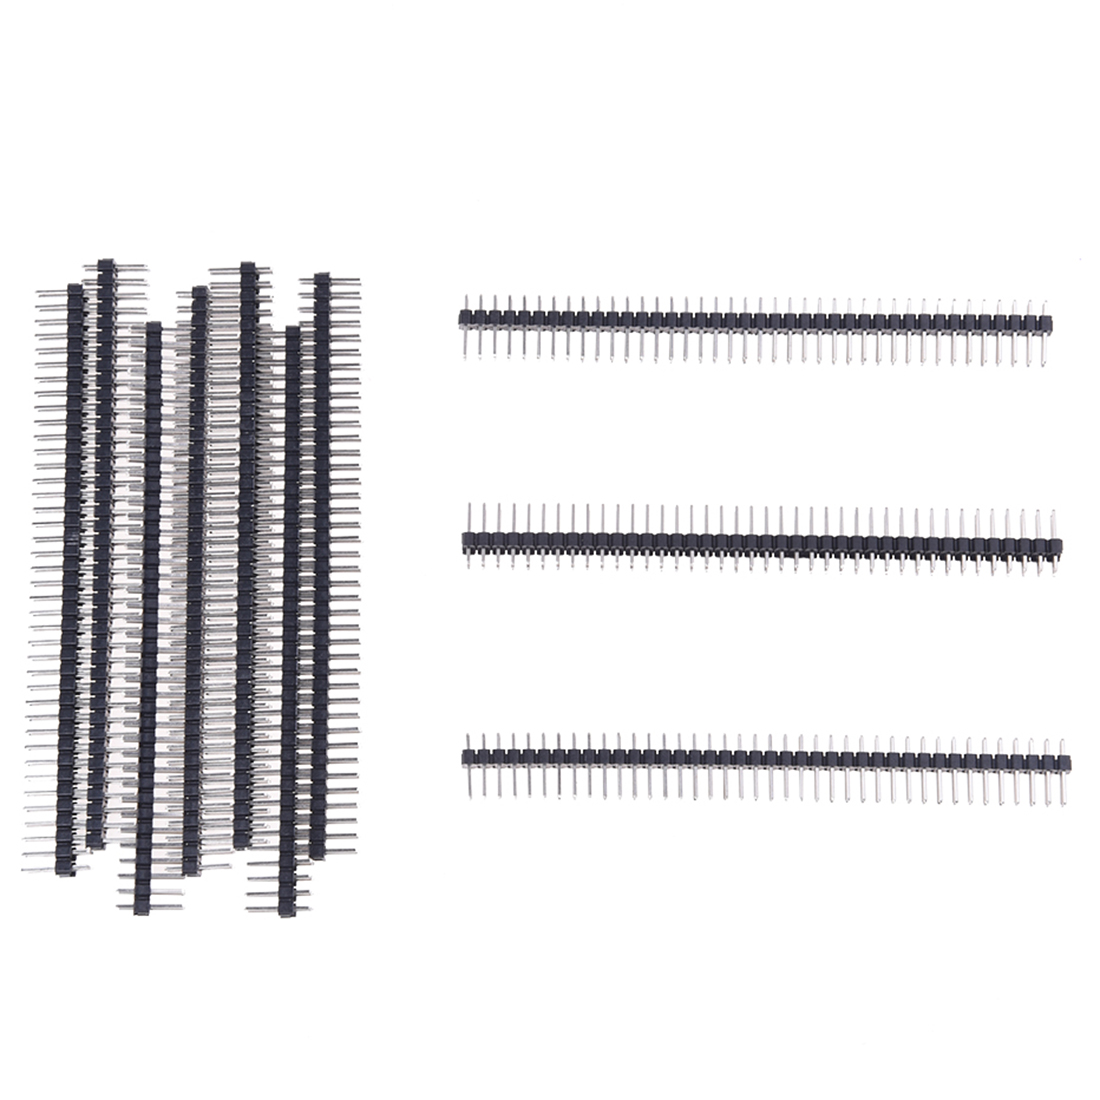 10 Pcs 2x40 Pin 2 54mm Pitch Double Row Pcb Pin Headers In